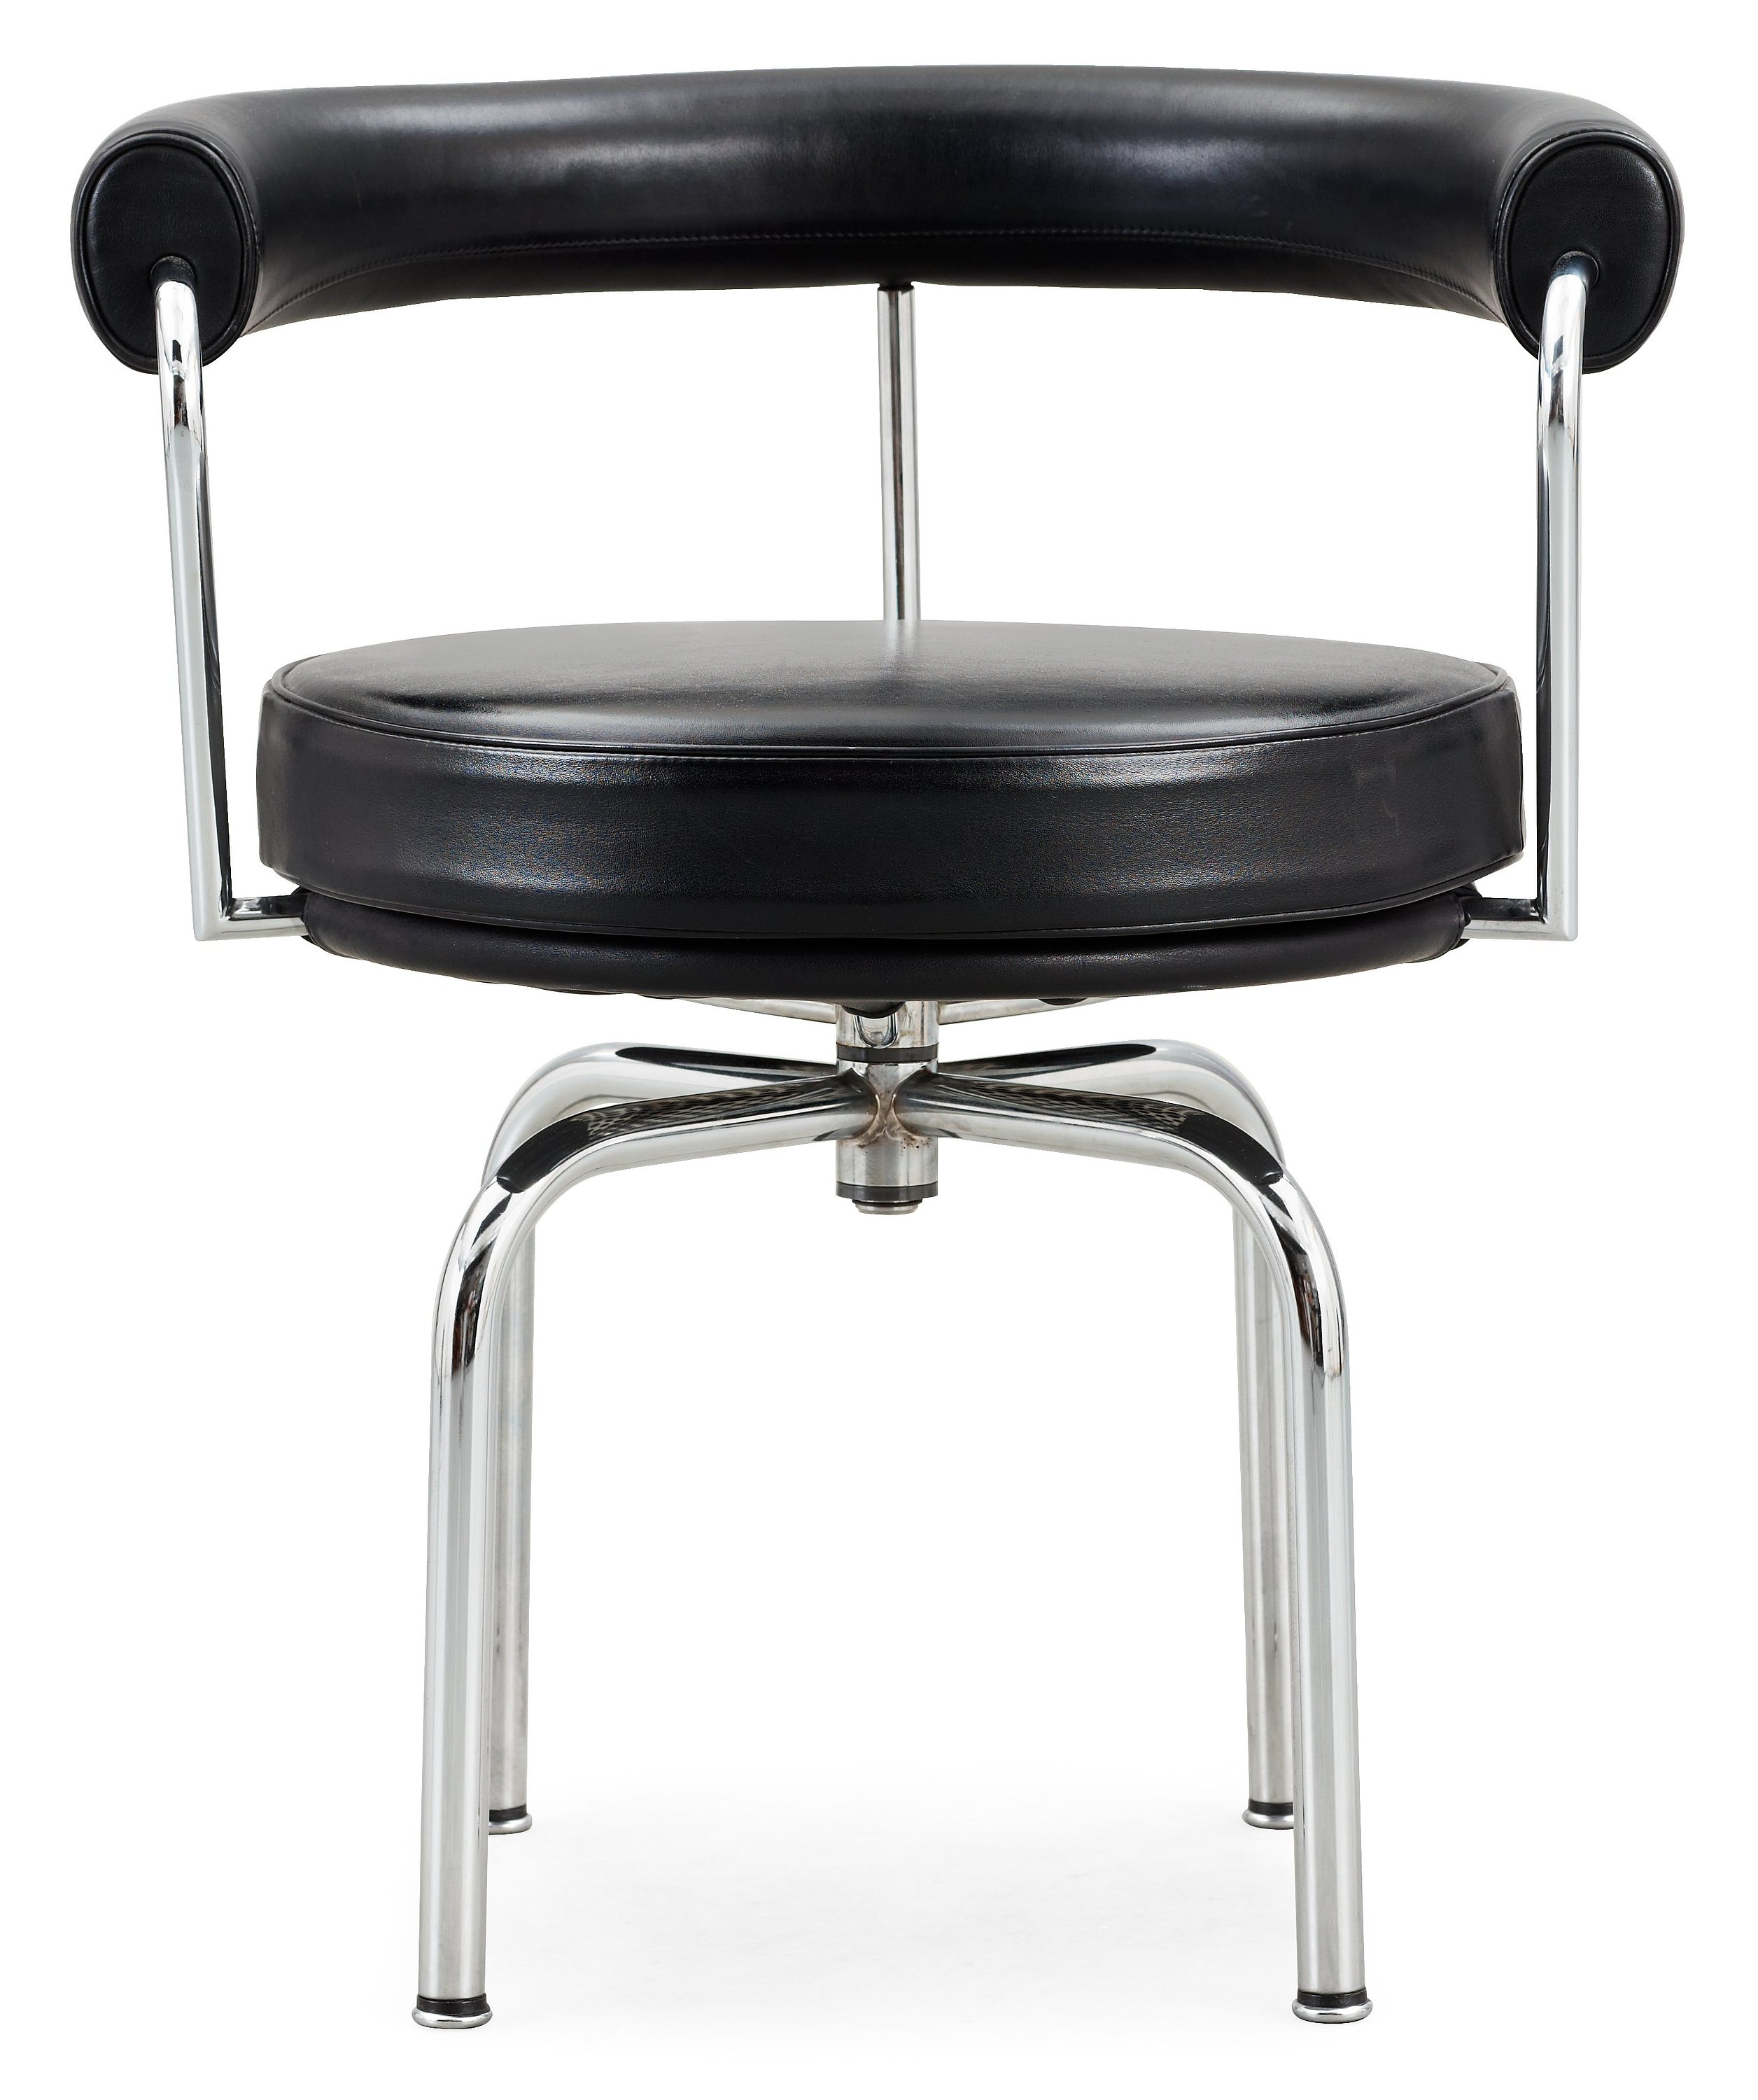 A Le Corbusier Pierre Jeanneret Charlotte Perriand Black Leather